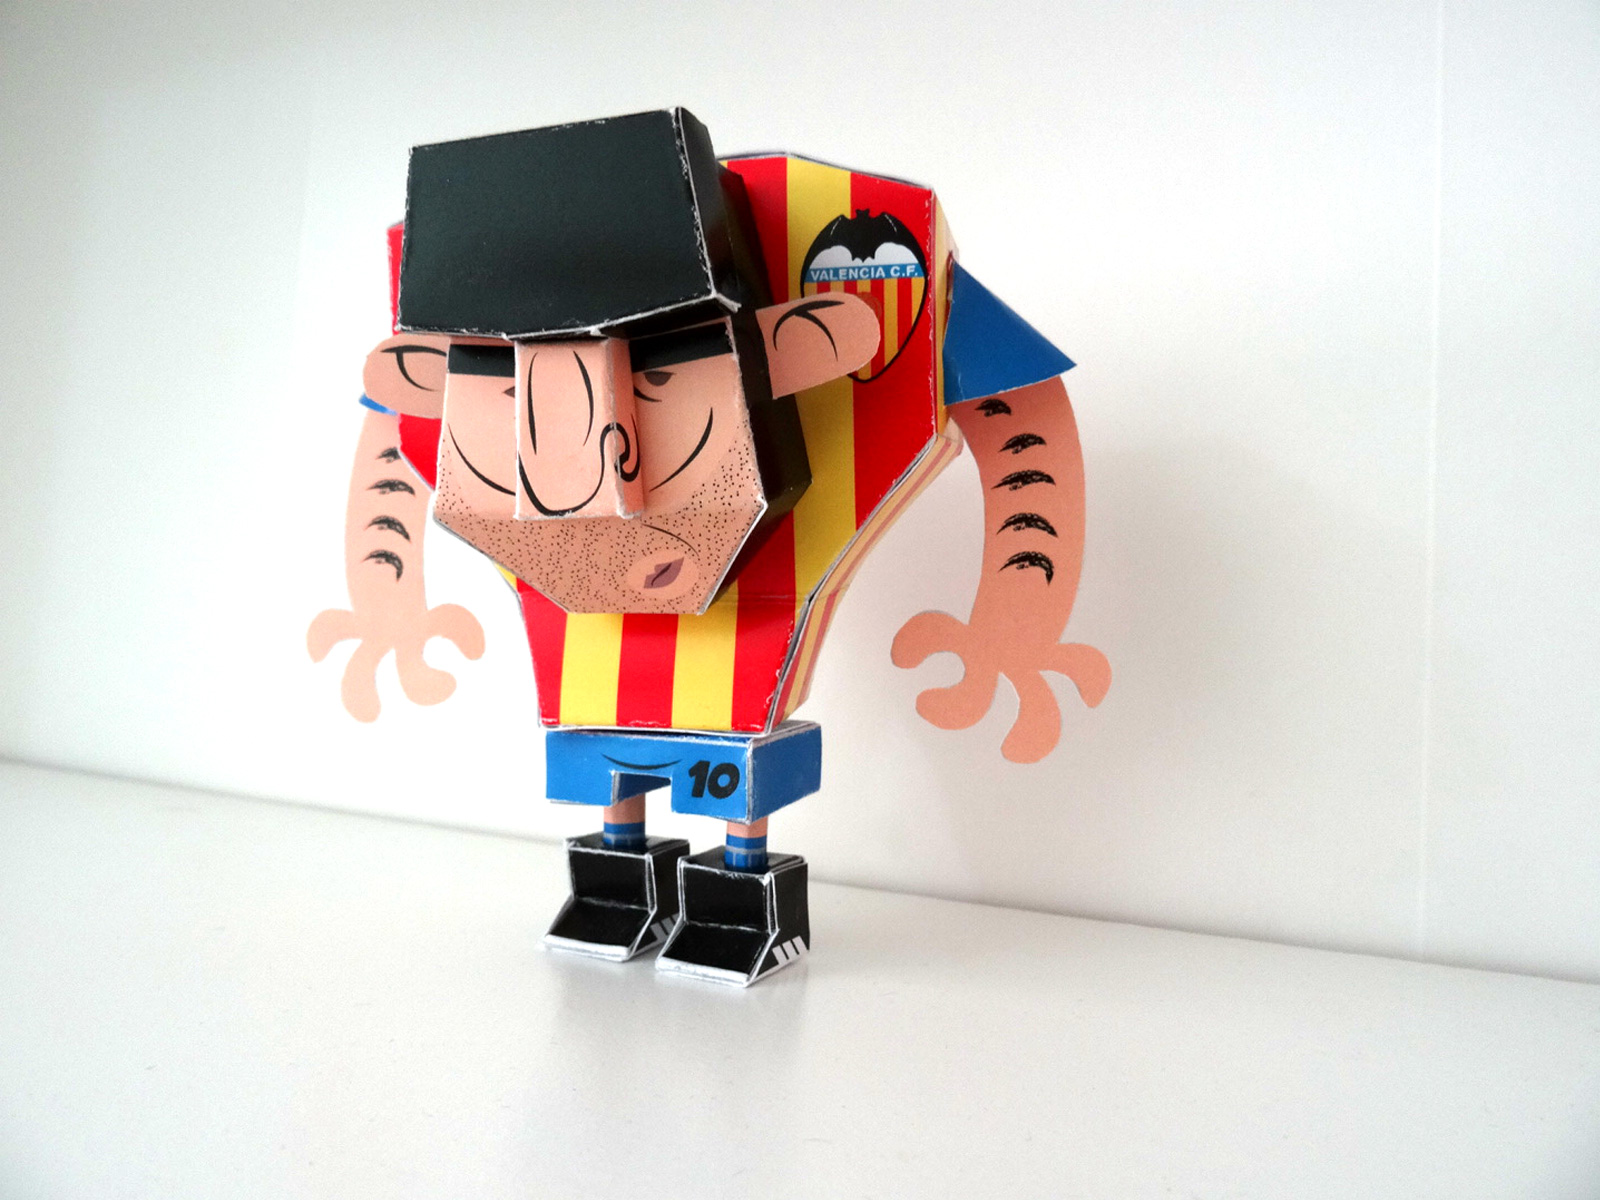 Paper Toy of Mario Kempes